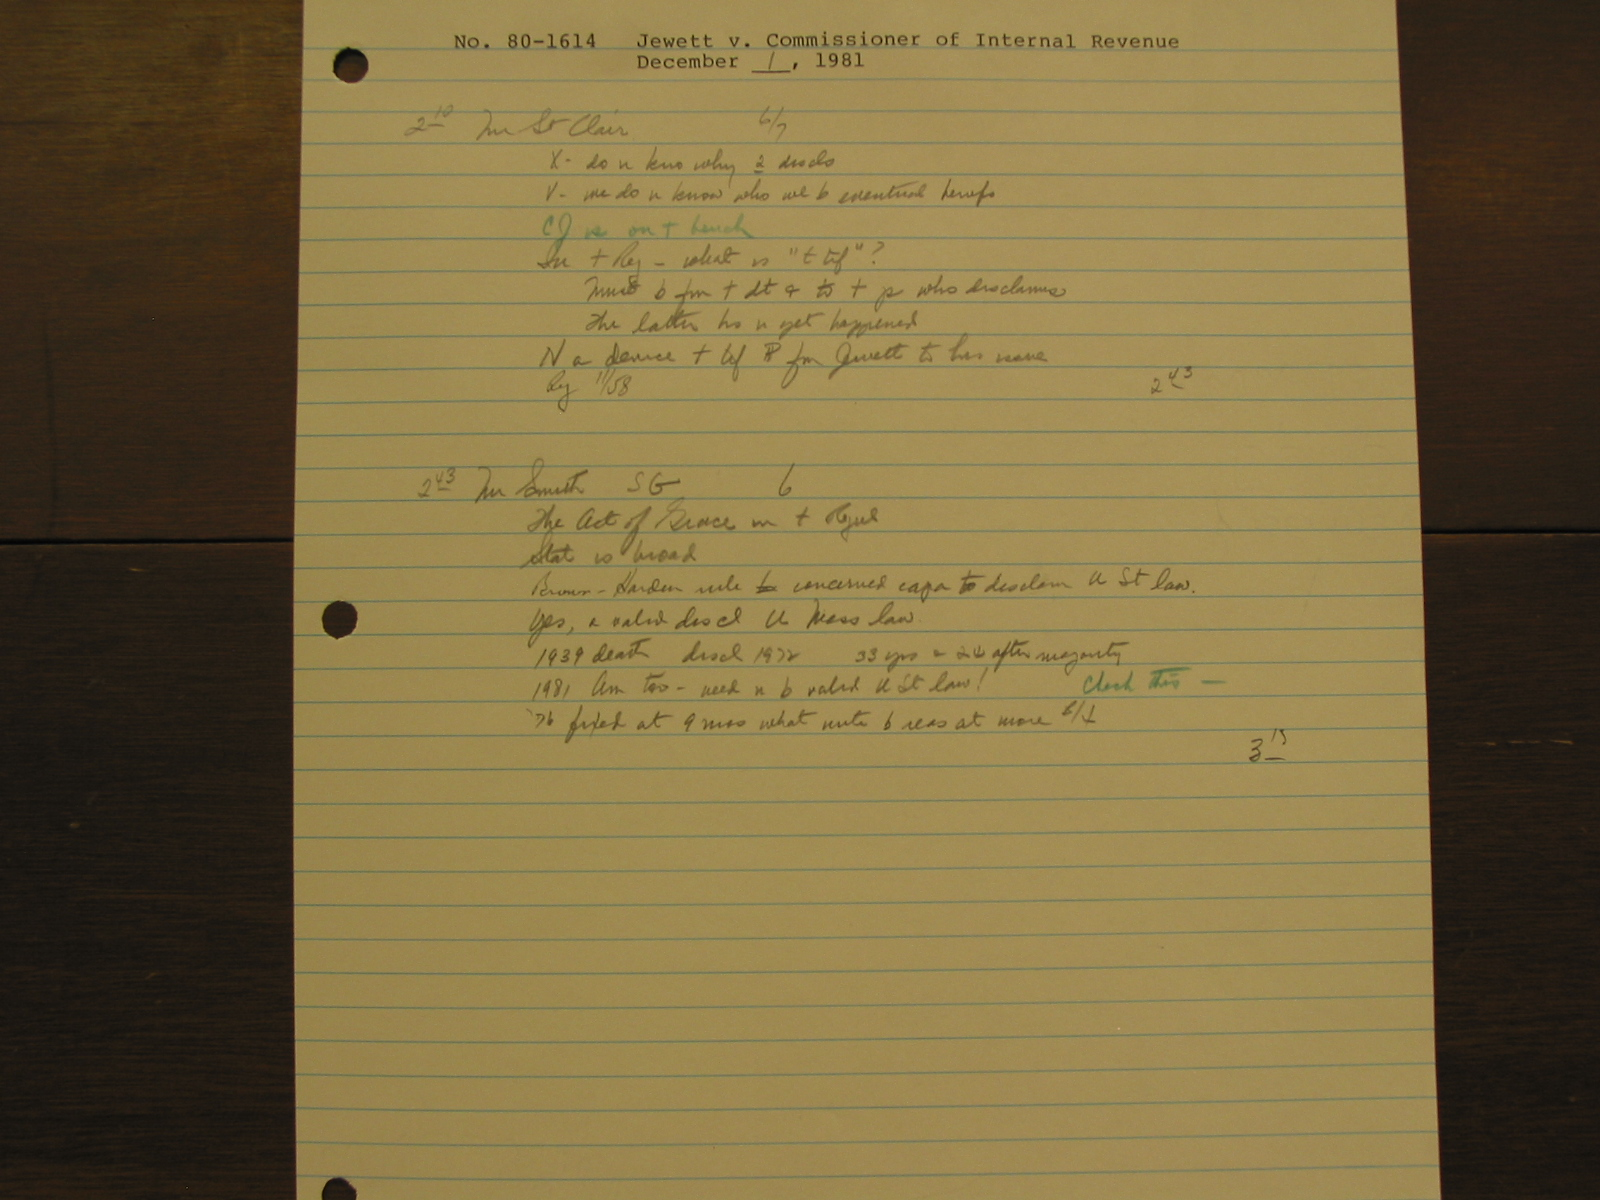 Timothy Johnson : Oral Argument Notes